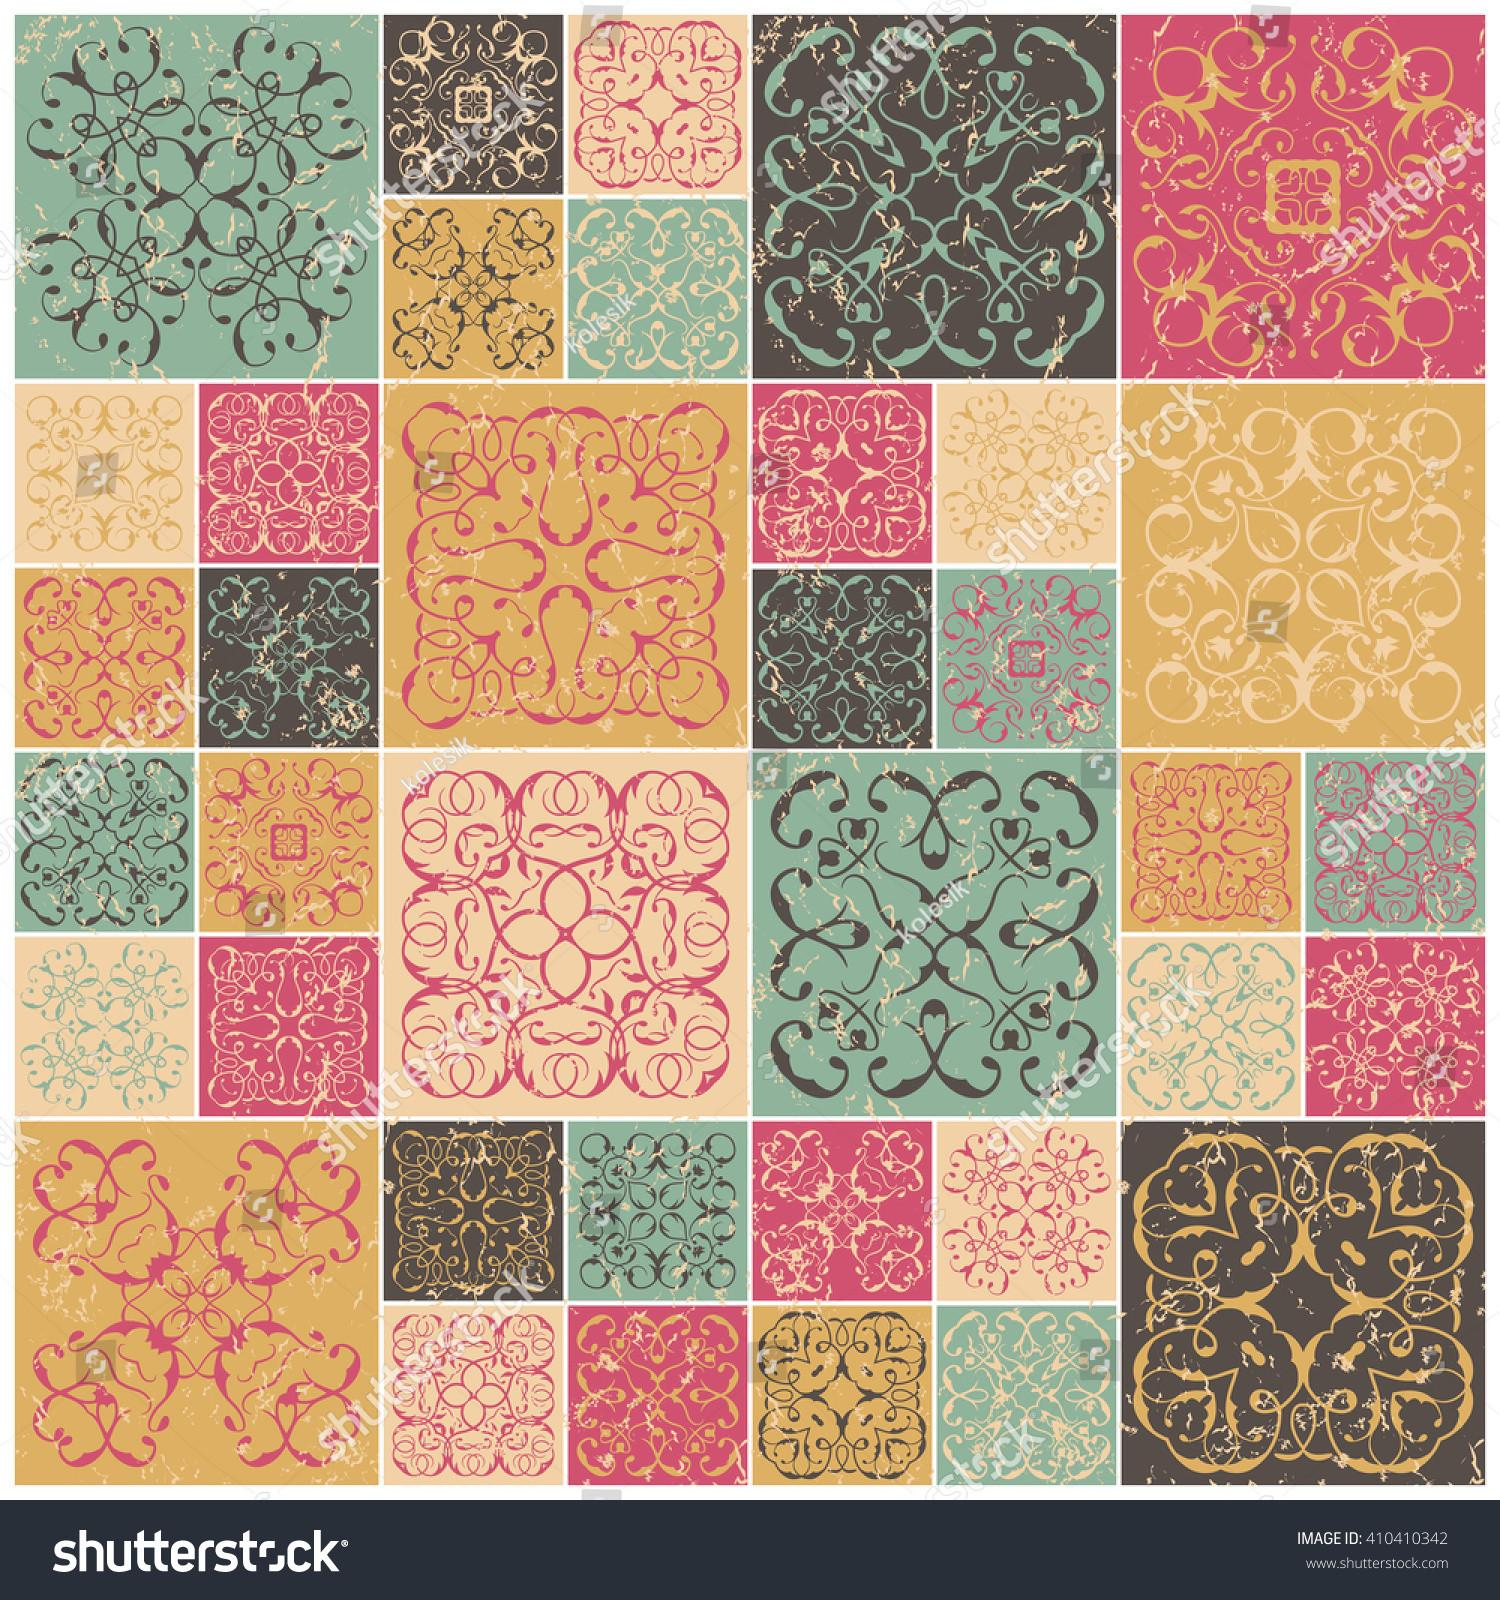 Patchwork Design Colorful Square Tiles Floral